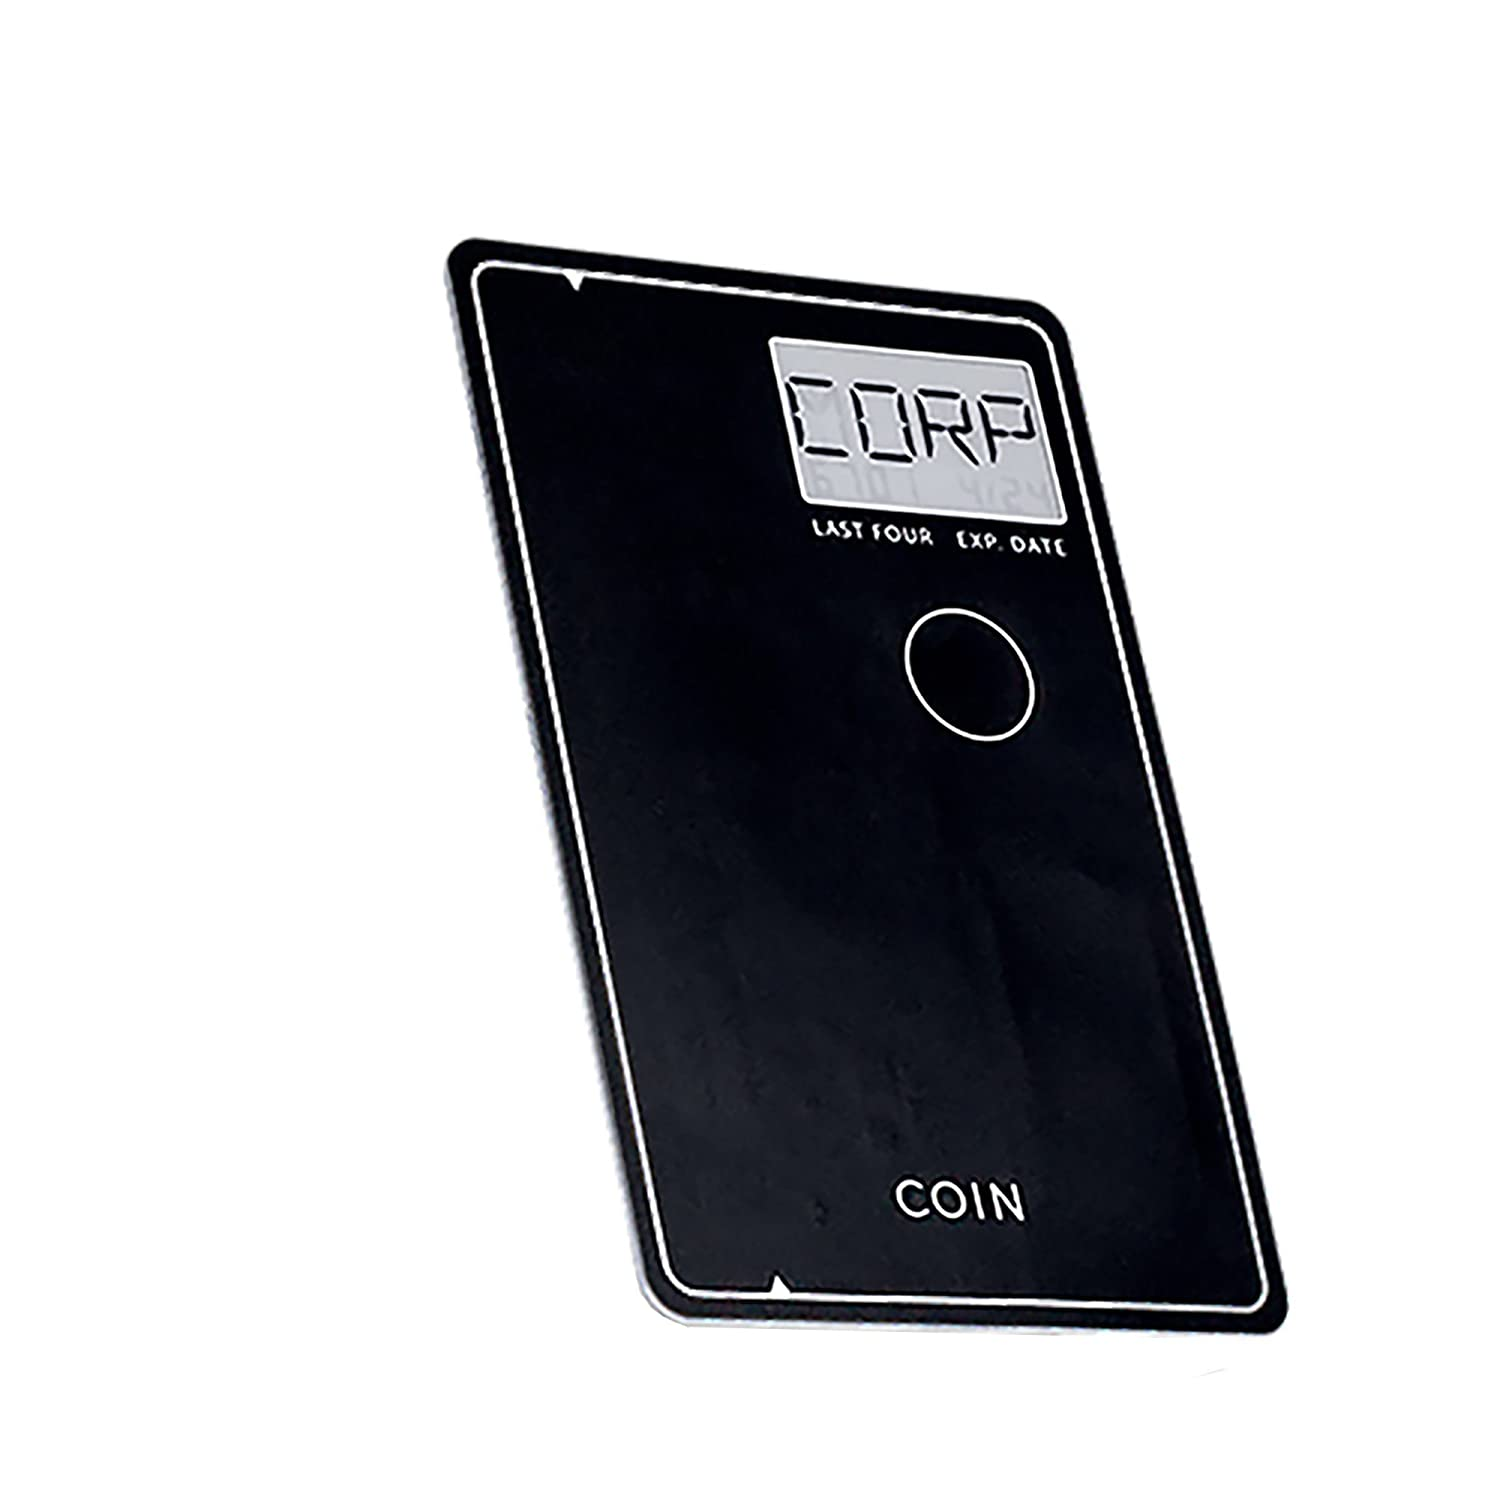 Amazon.com: Coin 2.0 Smart Payment Device [SOLD OUT]: Amazon Launchpad